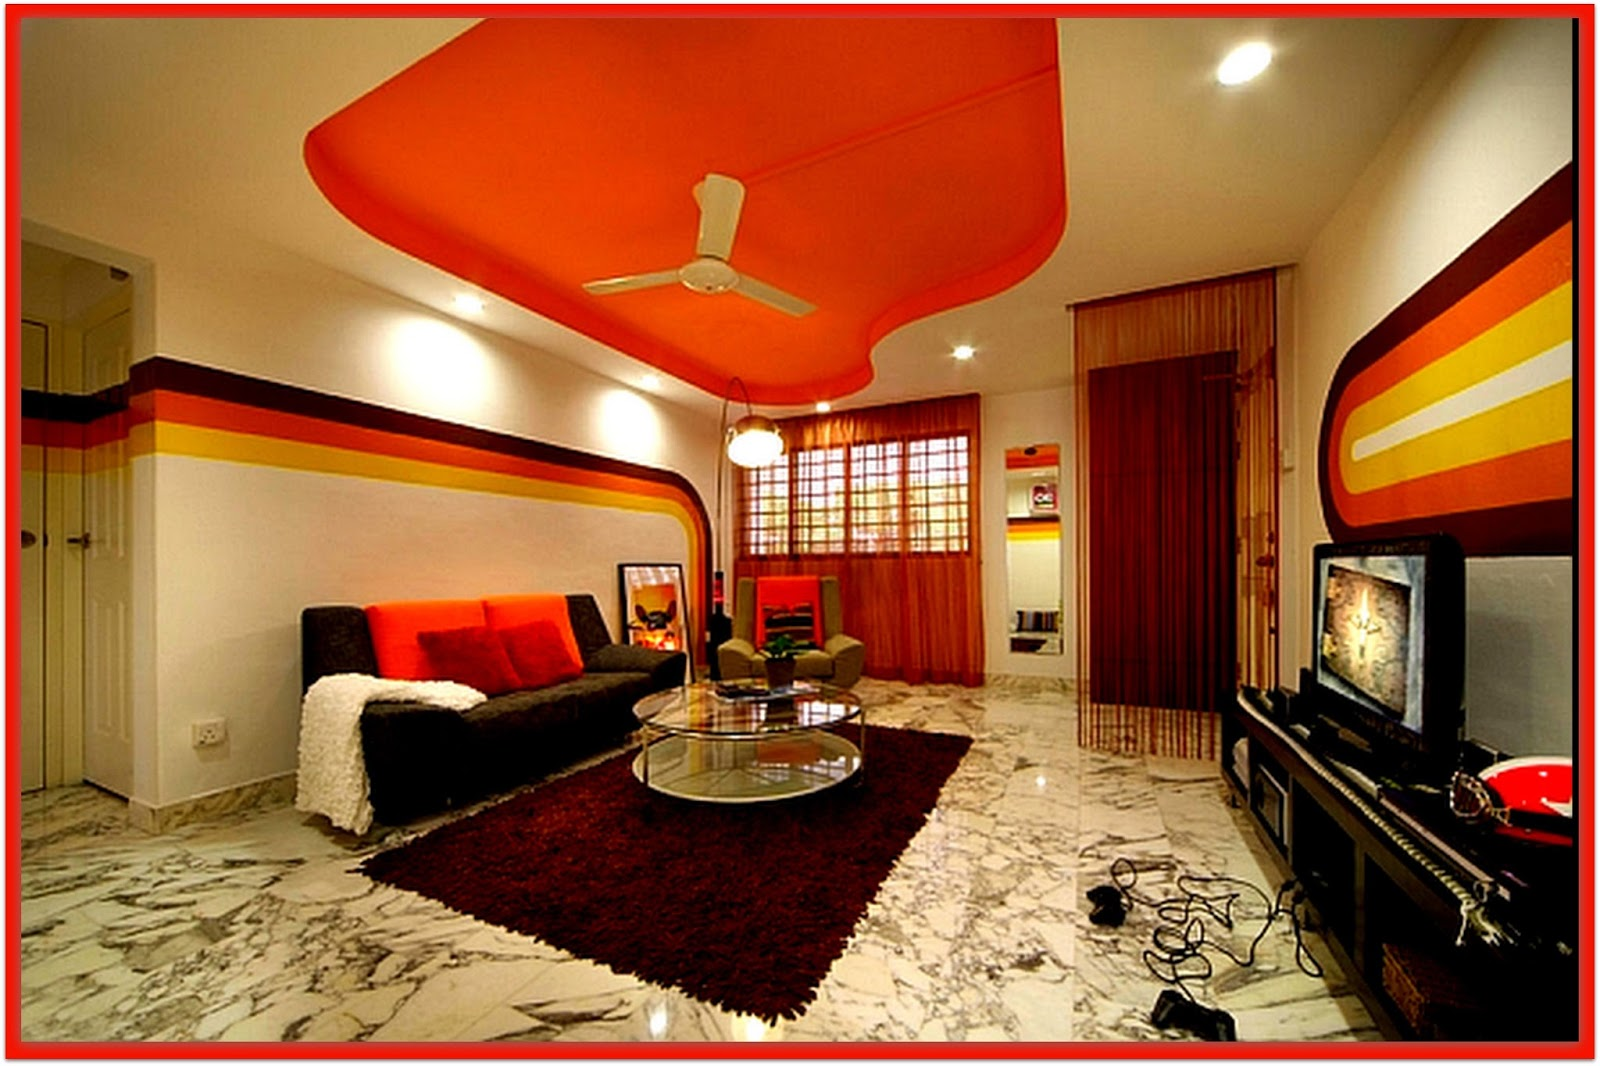 AfroChops : 60's-70's Fashion, Furniture and Furnishings